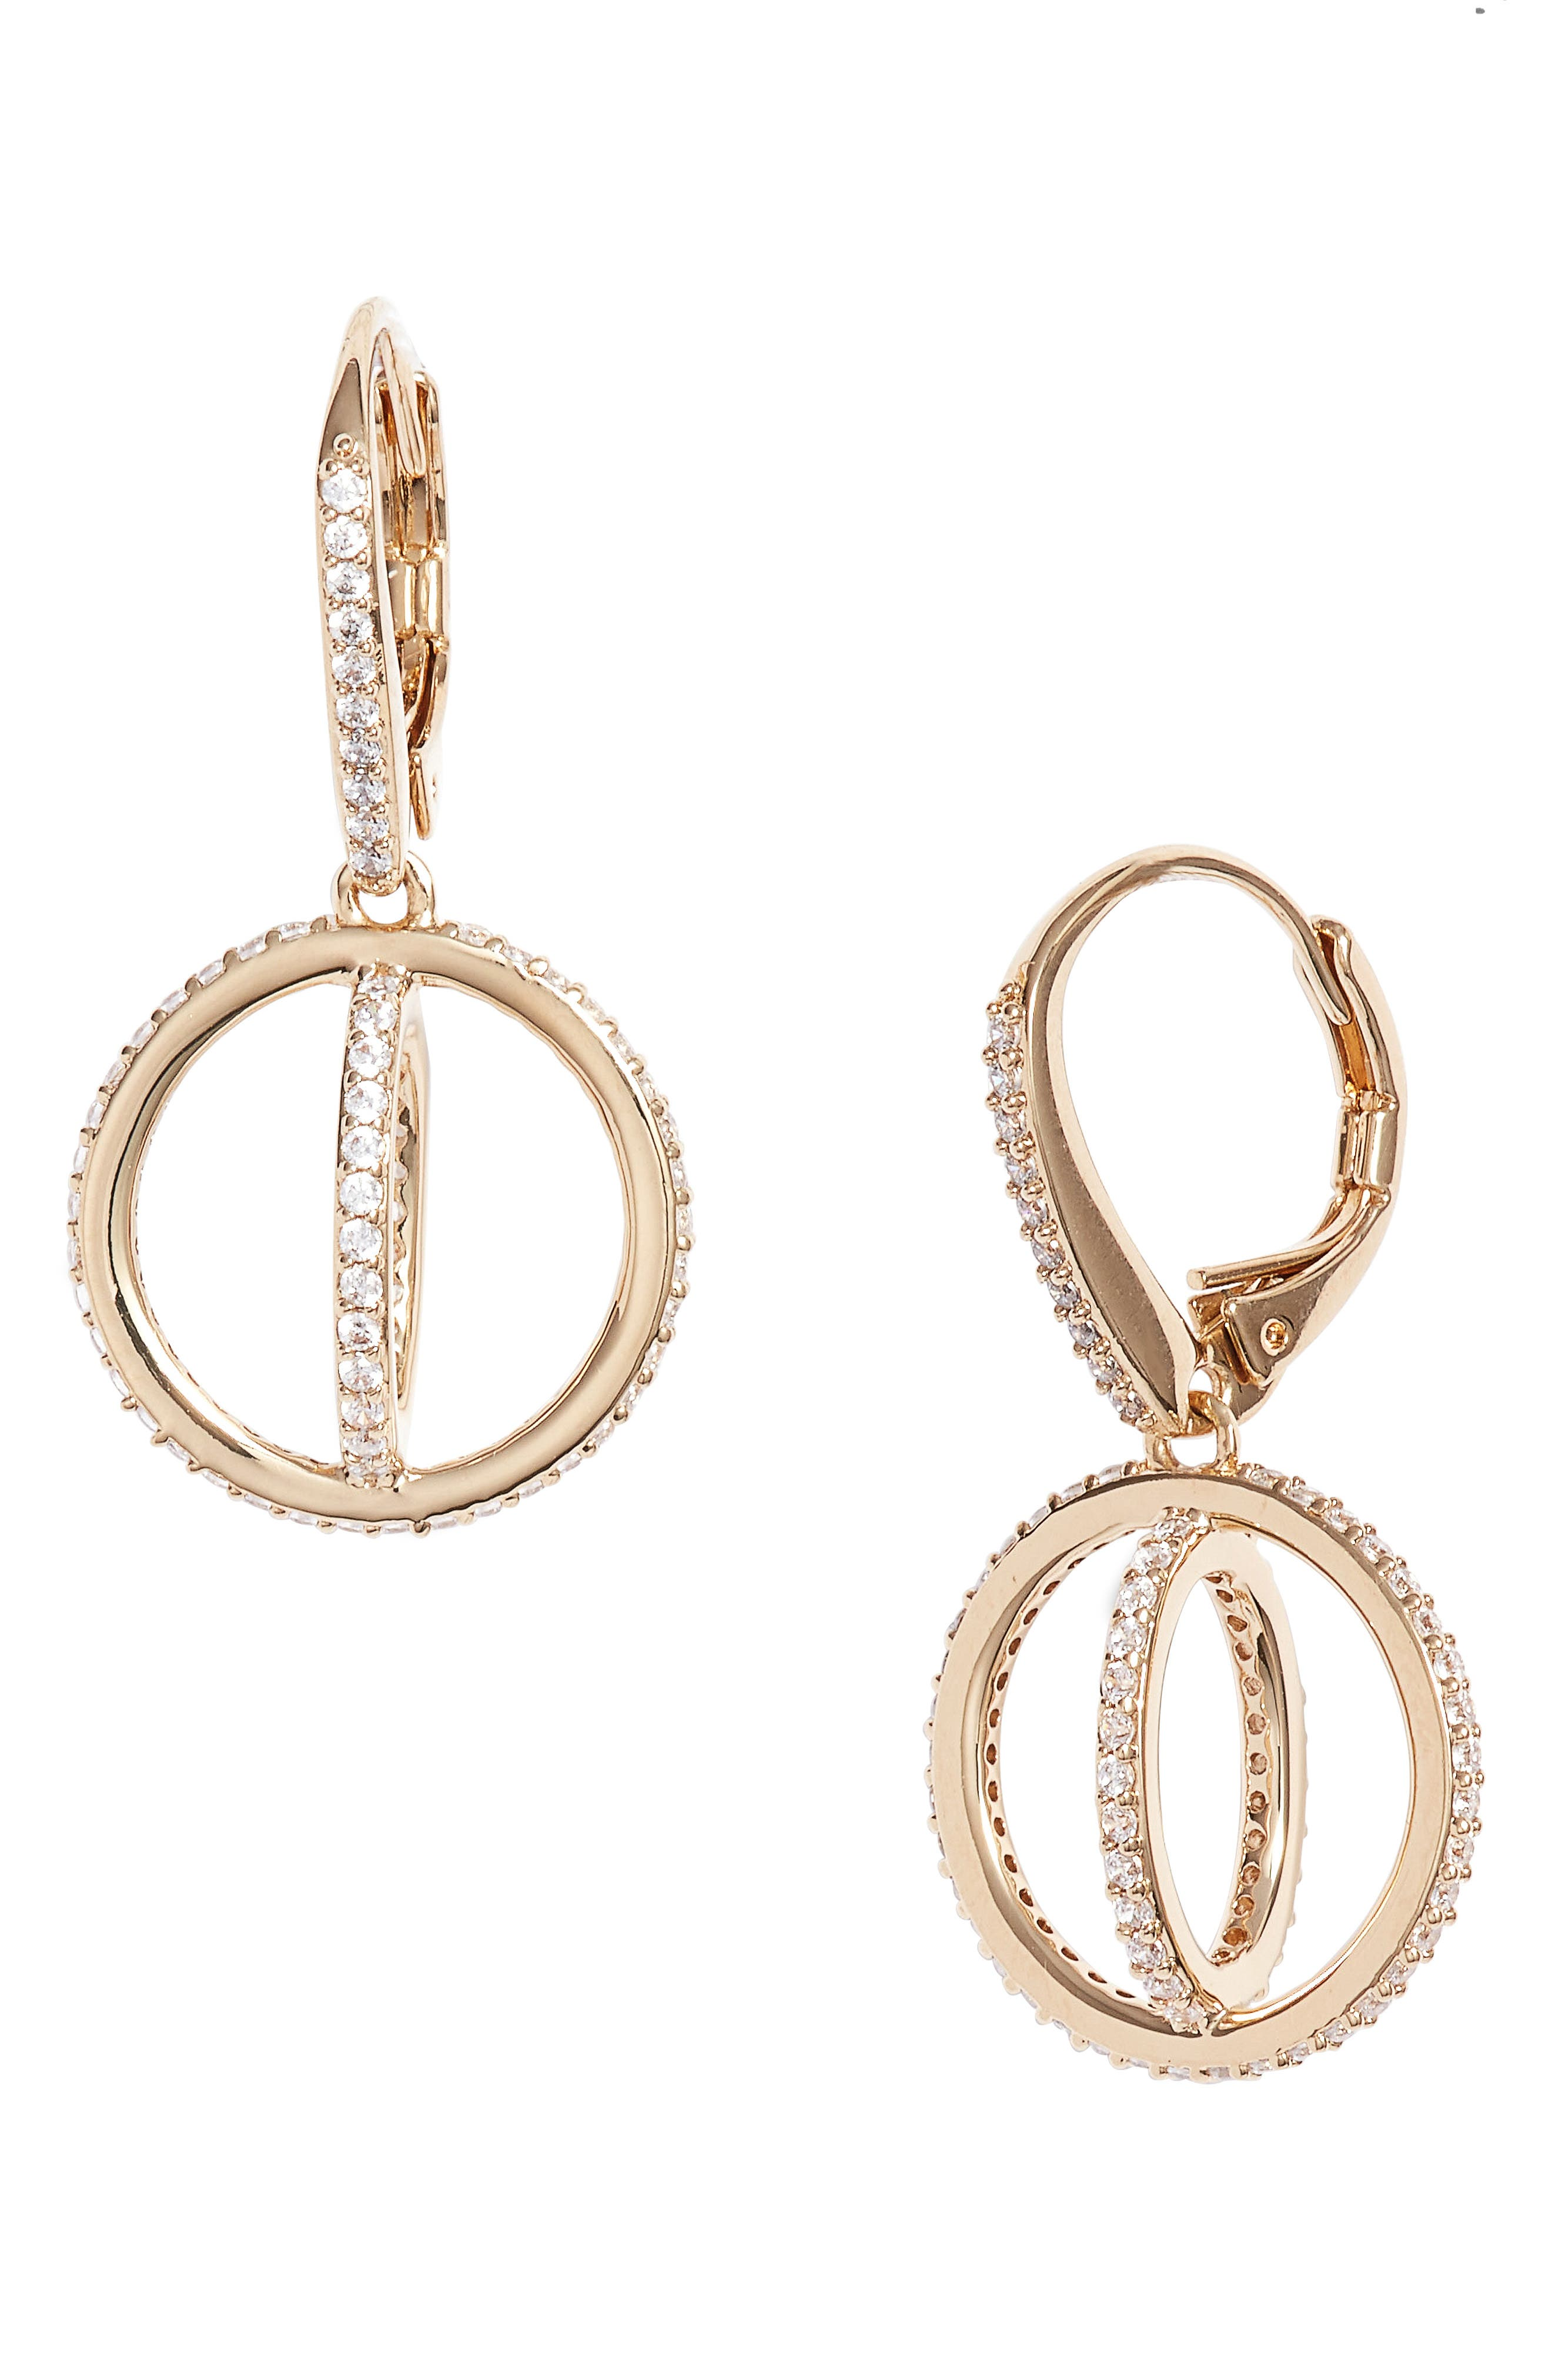 Crystal Open Circle Drop Earrings,                             Main thumbnail 1, color,                             Gold/ Clear